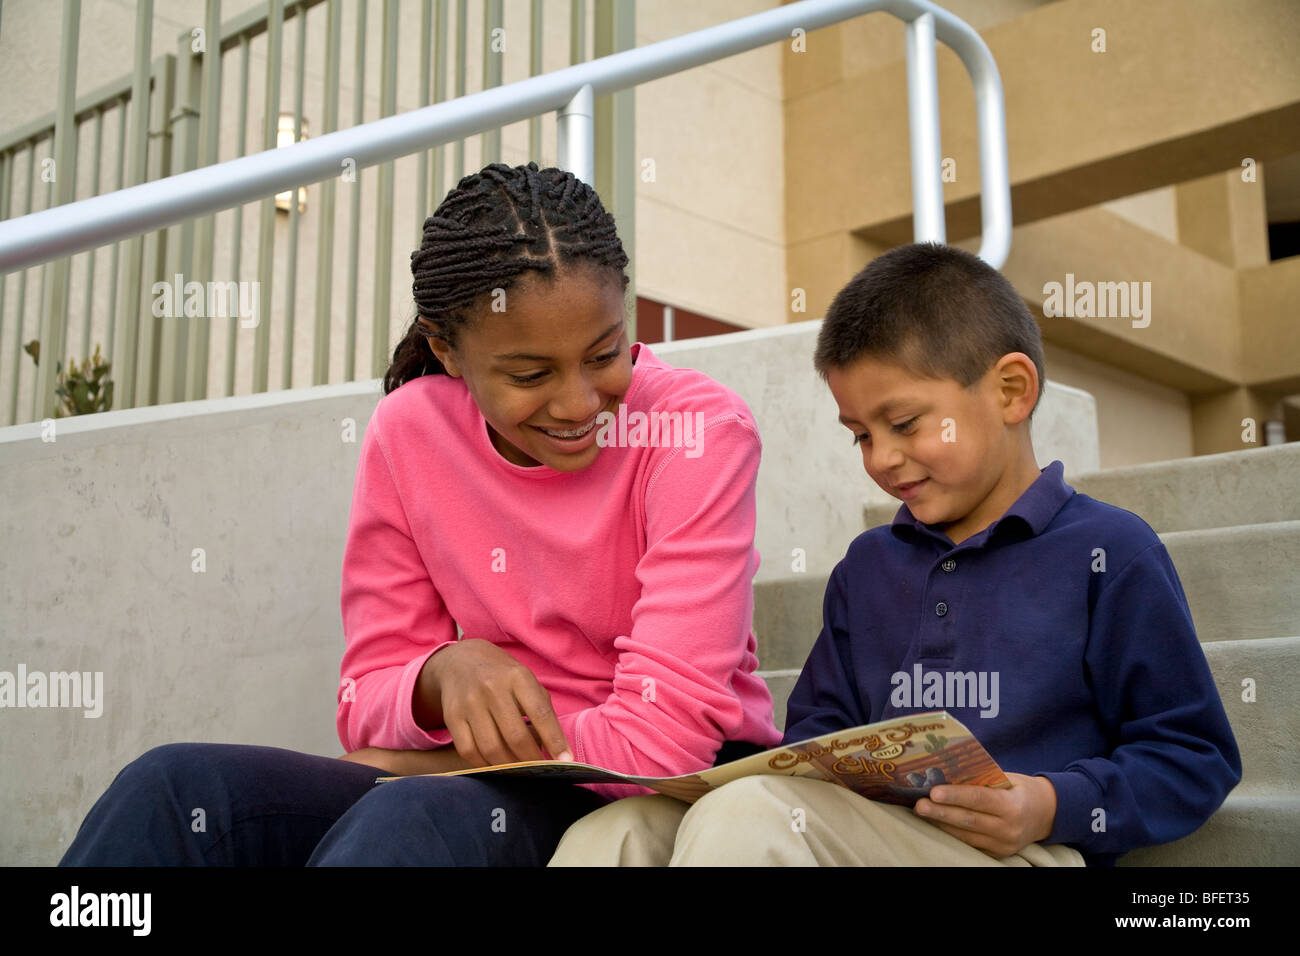 Ethnic girl 13-15 year old reads book boy 5 year old service Helping Helps multiethnic multiracial racially diverse - Stock Image